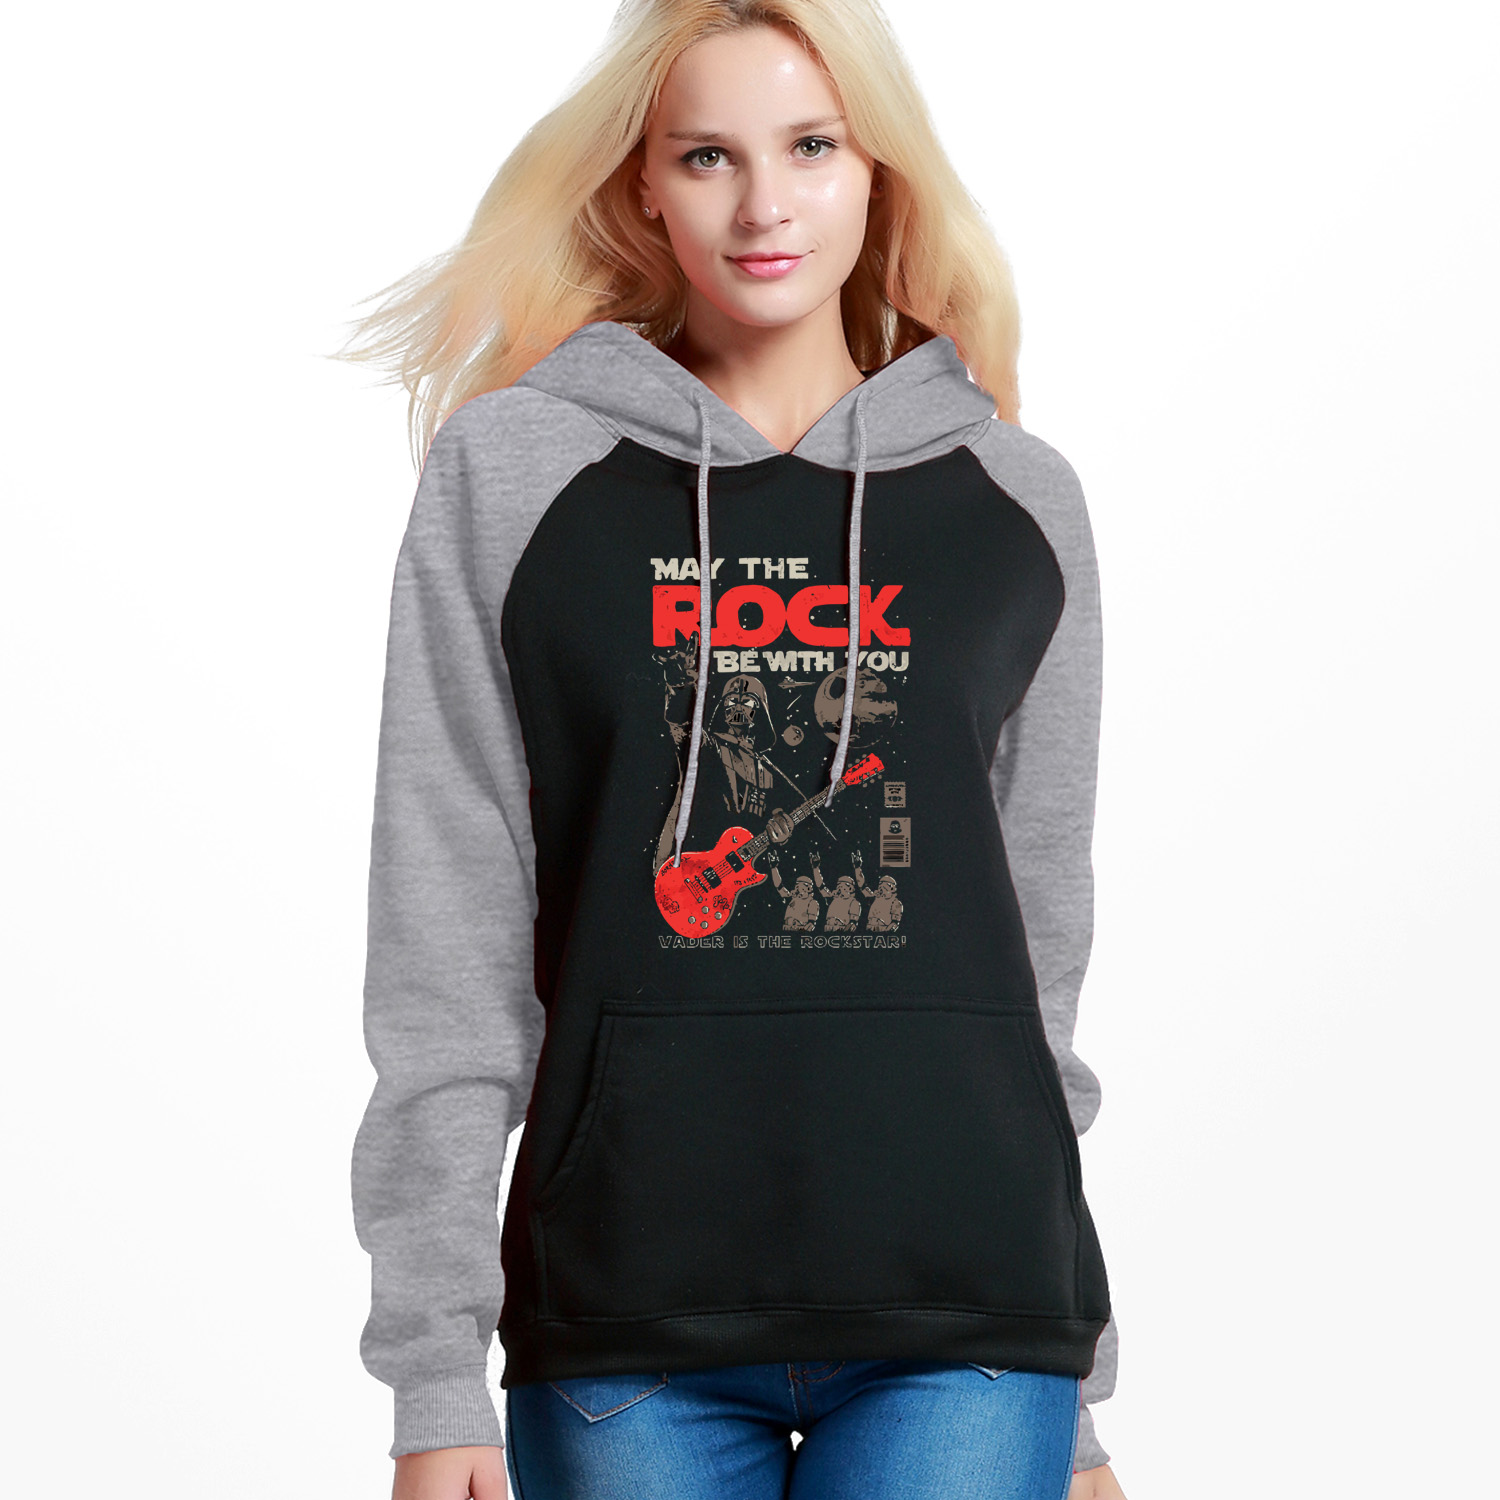 May The Rock Be With You Print Hoodie Women Winter Raglan Pullover Star Wars Hipster Female Sweatshirt Fashion Hot Sell Pullover